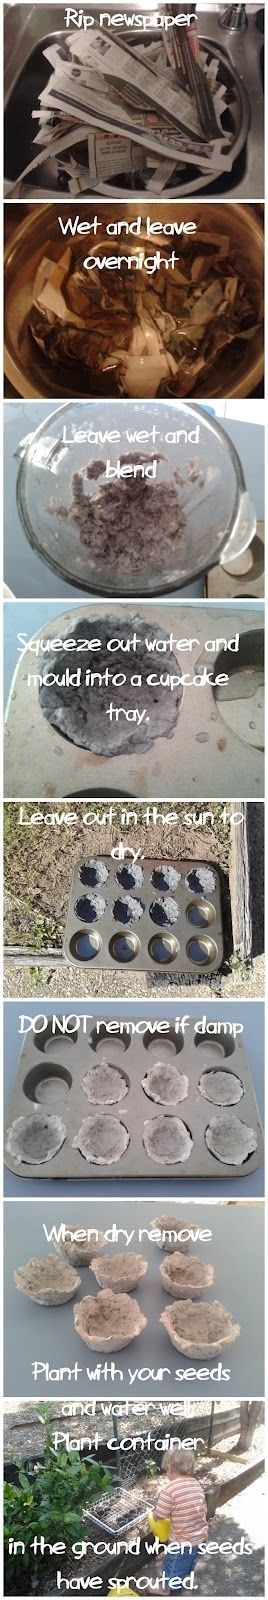 DIY plant-able seed pots